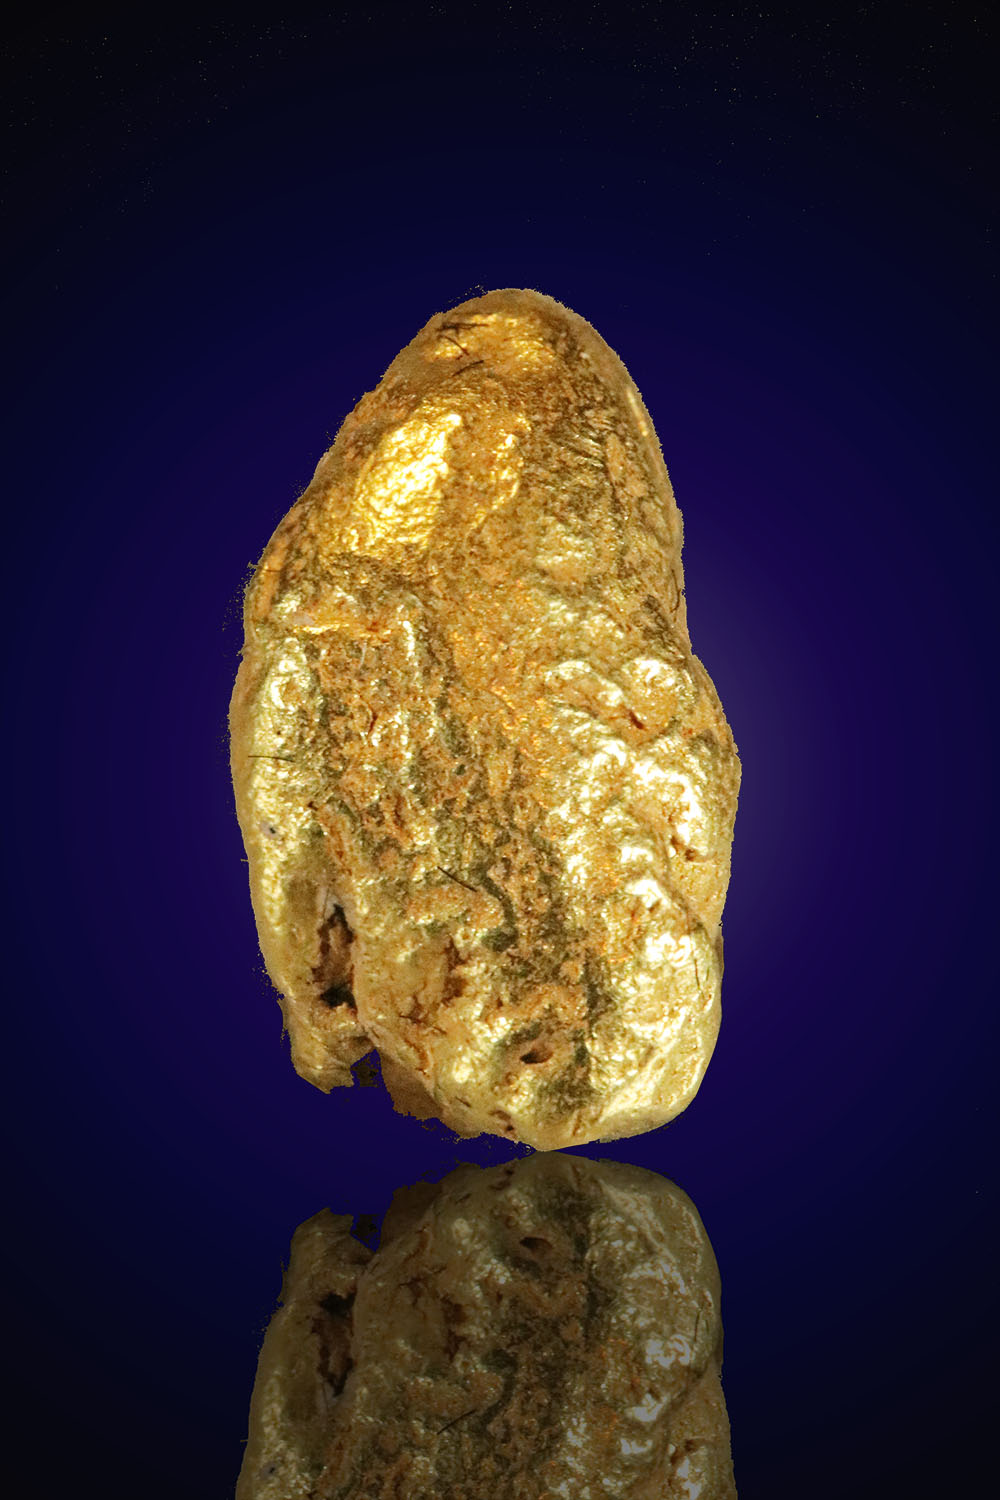 River Worn Smooth Gold Nugget From Alaska